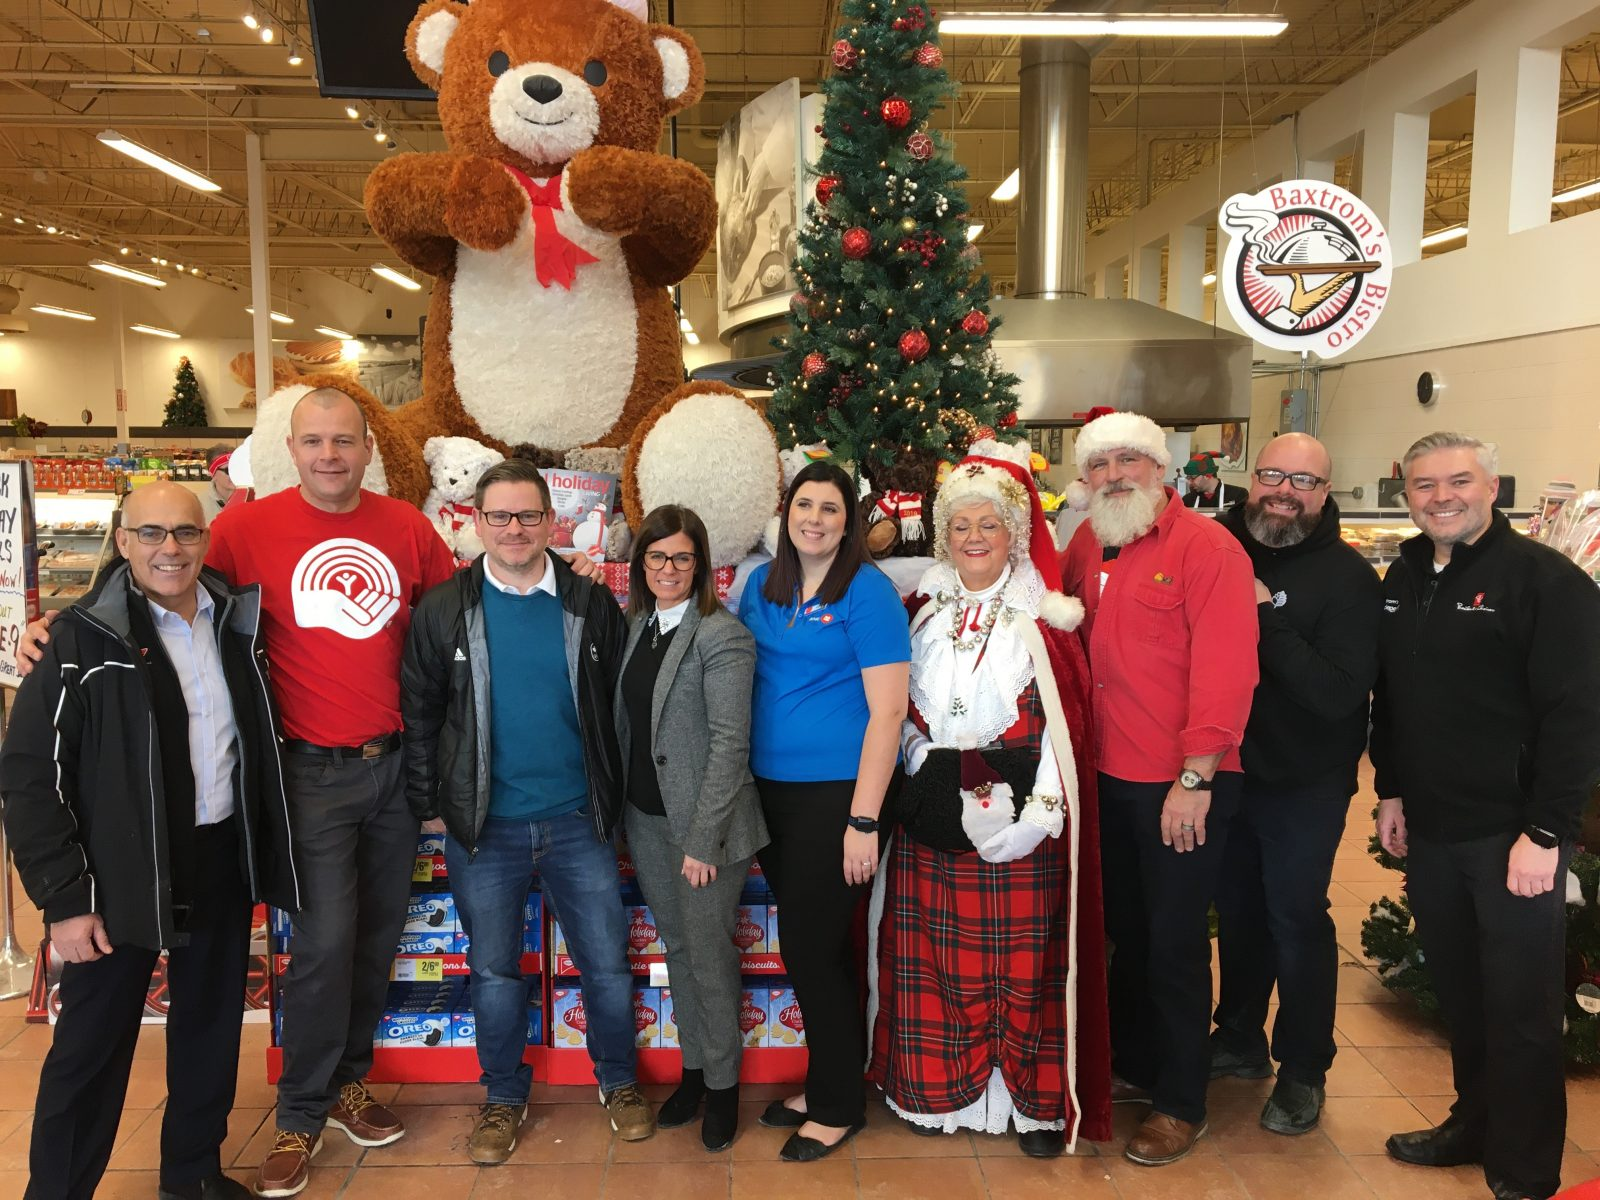 United Way Celebration Sleigh winner announced